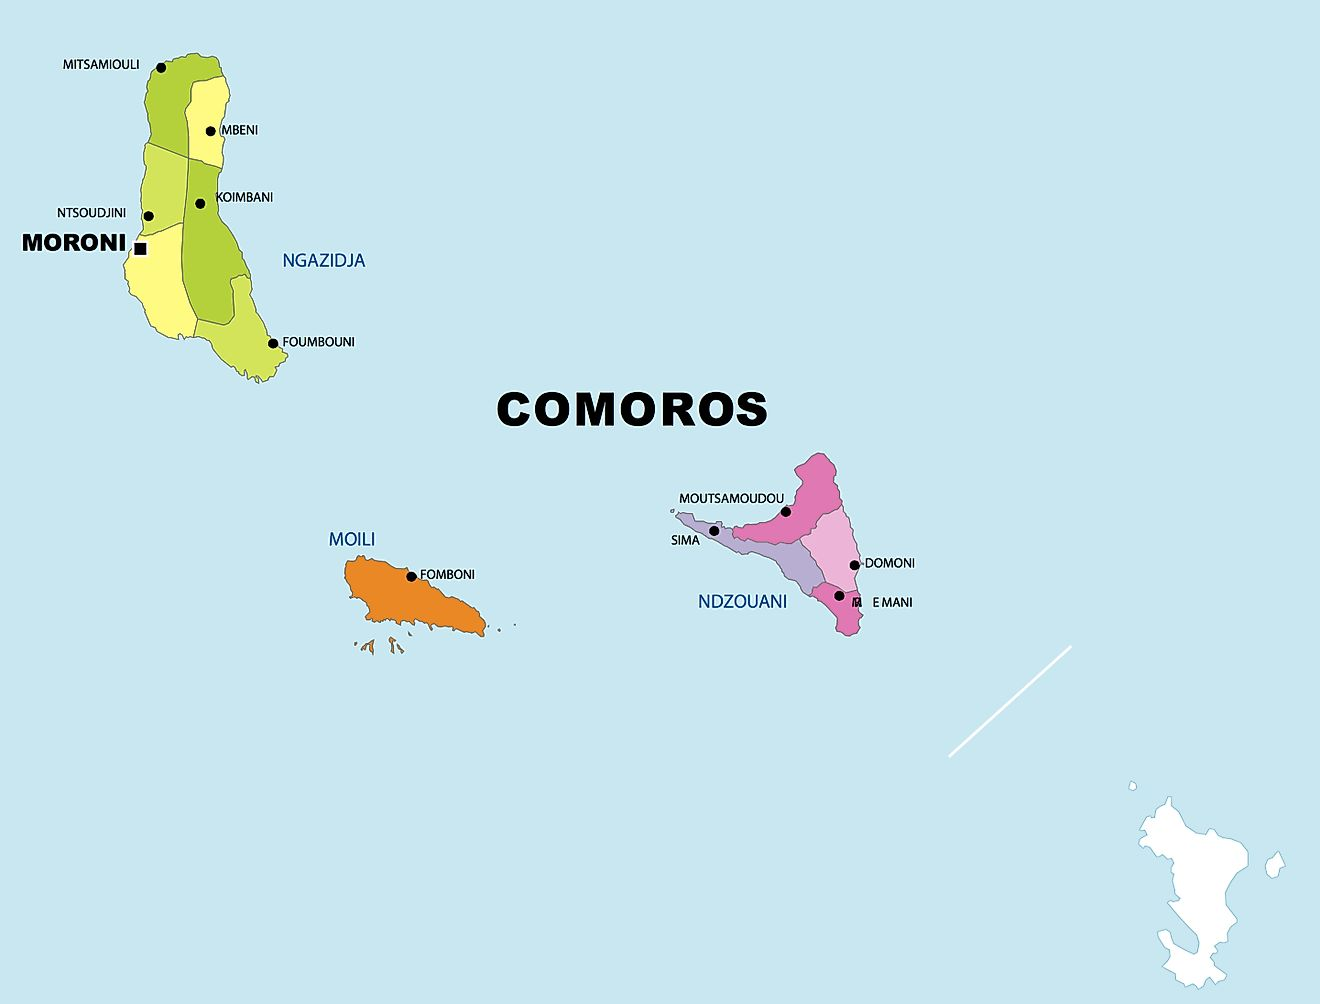 Political Map of Comoros showing 3 islands and national capital of Moroni.